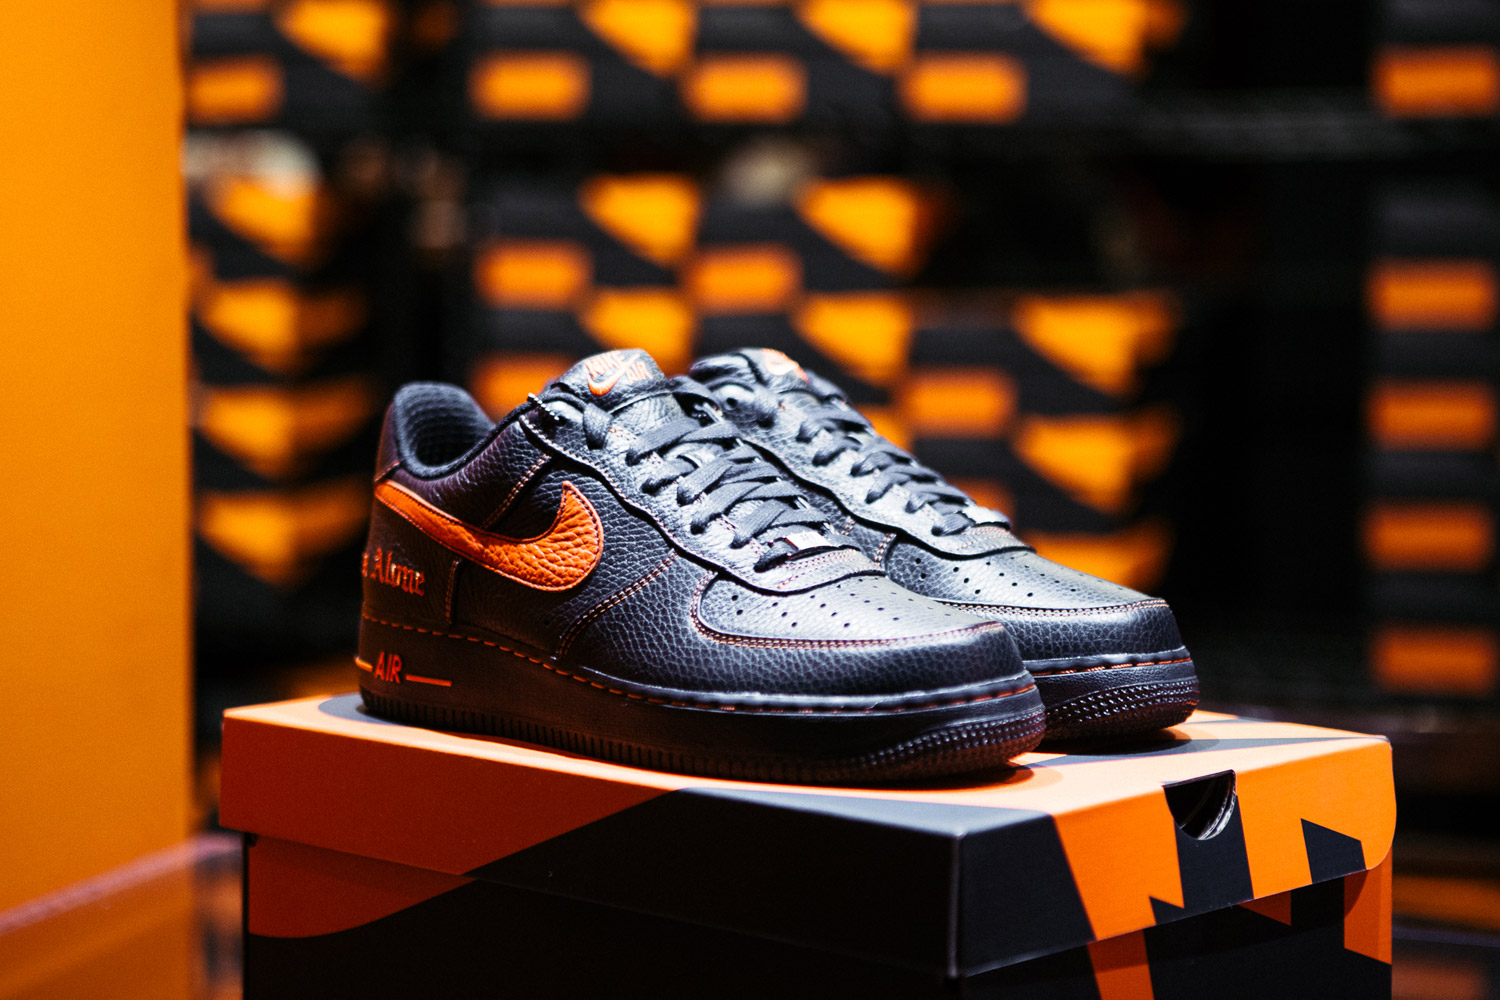 Nike-Air-Force-1-Vlone-Harlem-Pop-Up-Asap-Bari-12